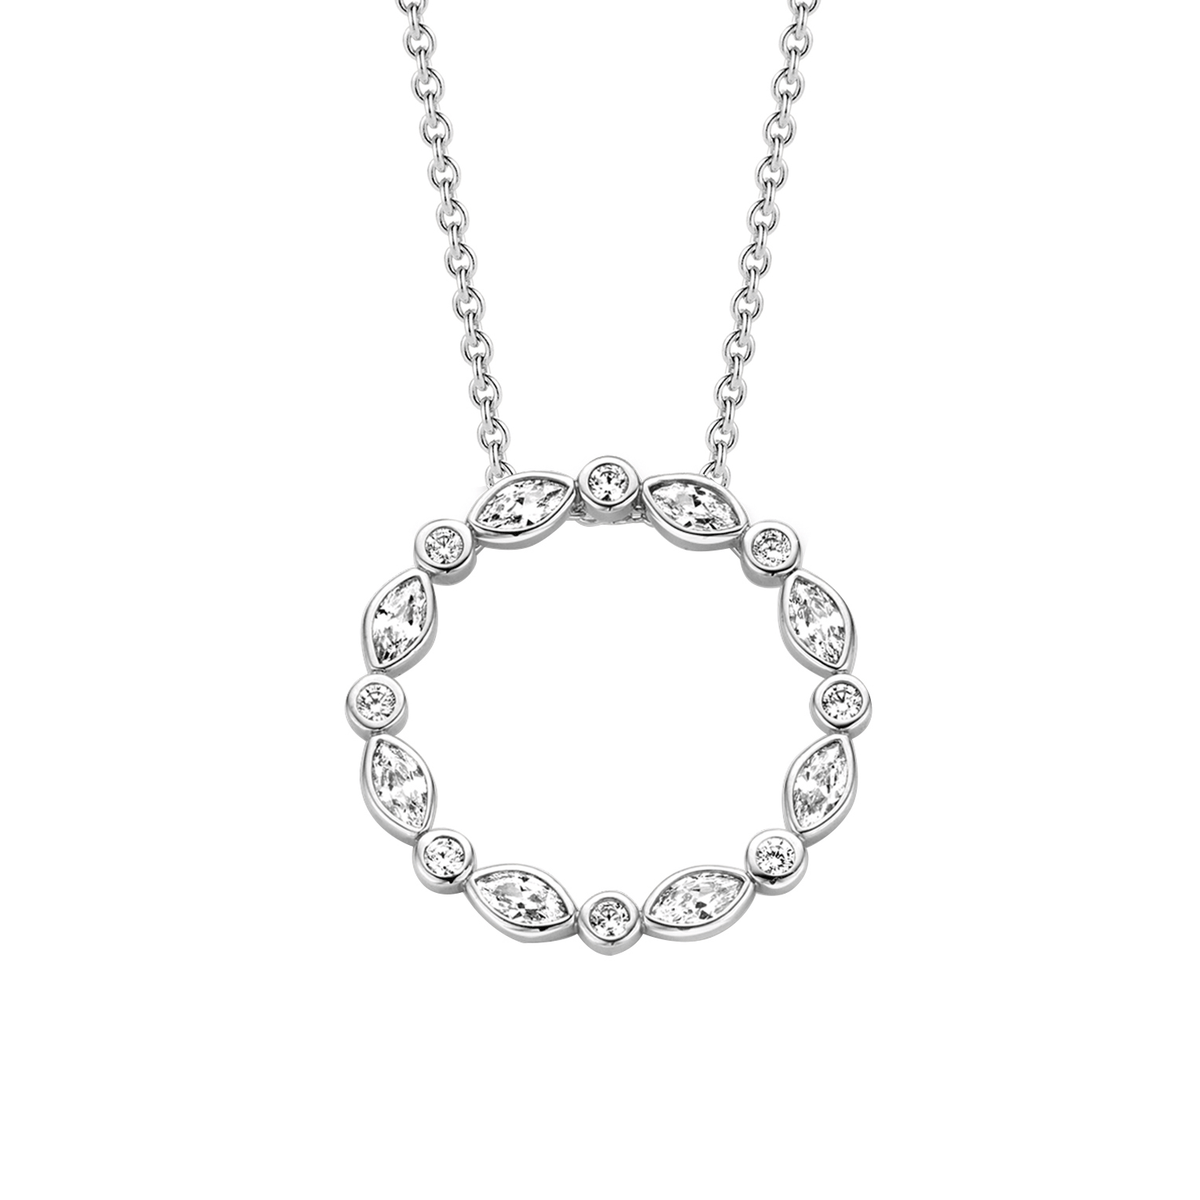 TI SENTO - Milano Necklace 3834ZI